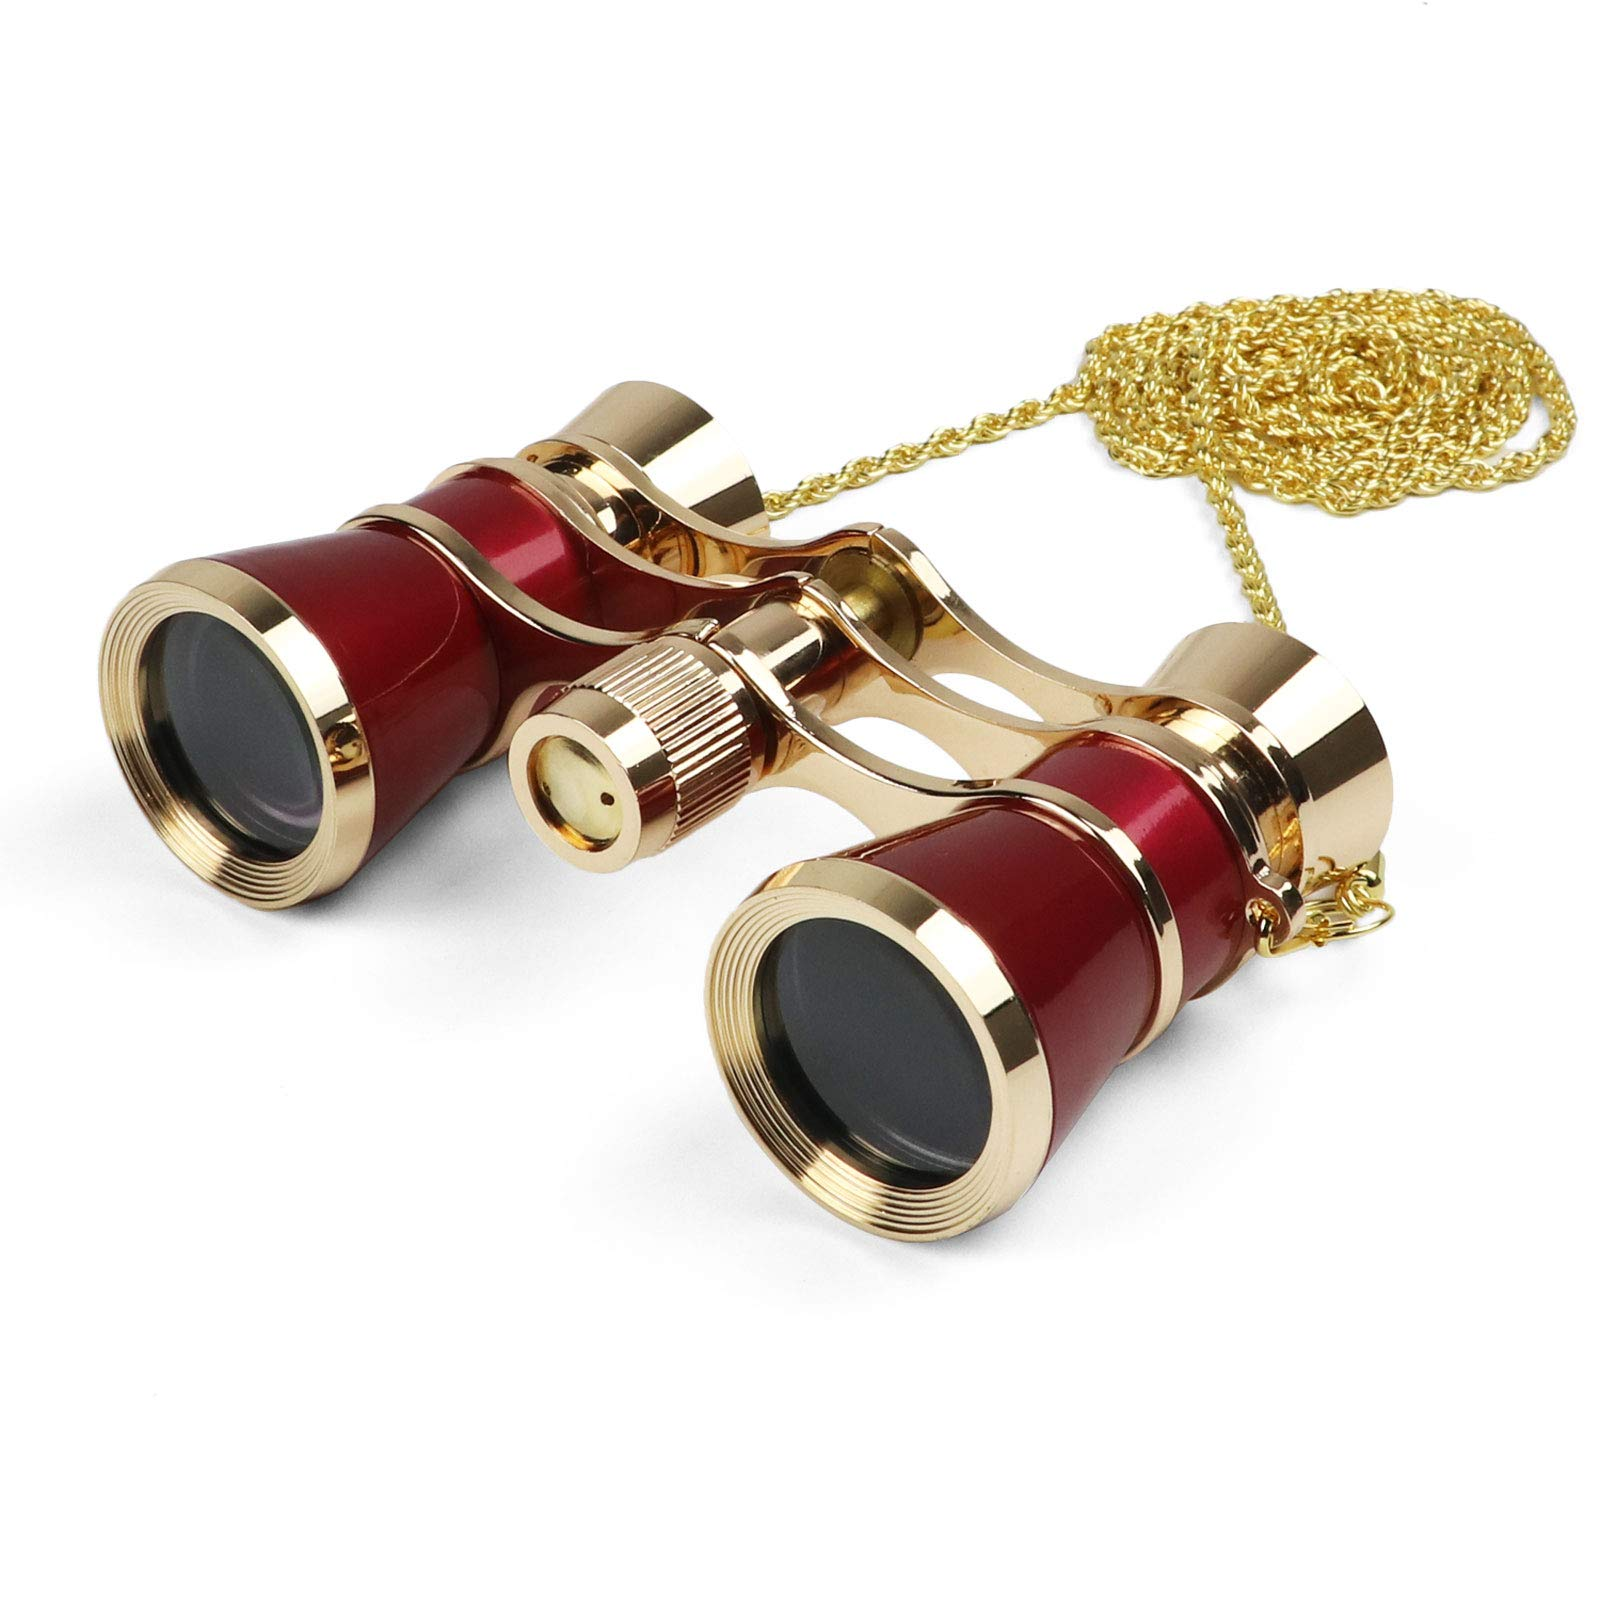 Kingscope 3X25 Vintage Opera Glasses Binoculars for Theater Musical Concert (Red, with Chain)